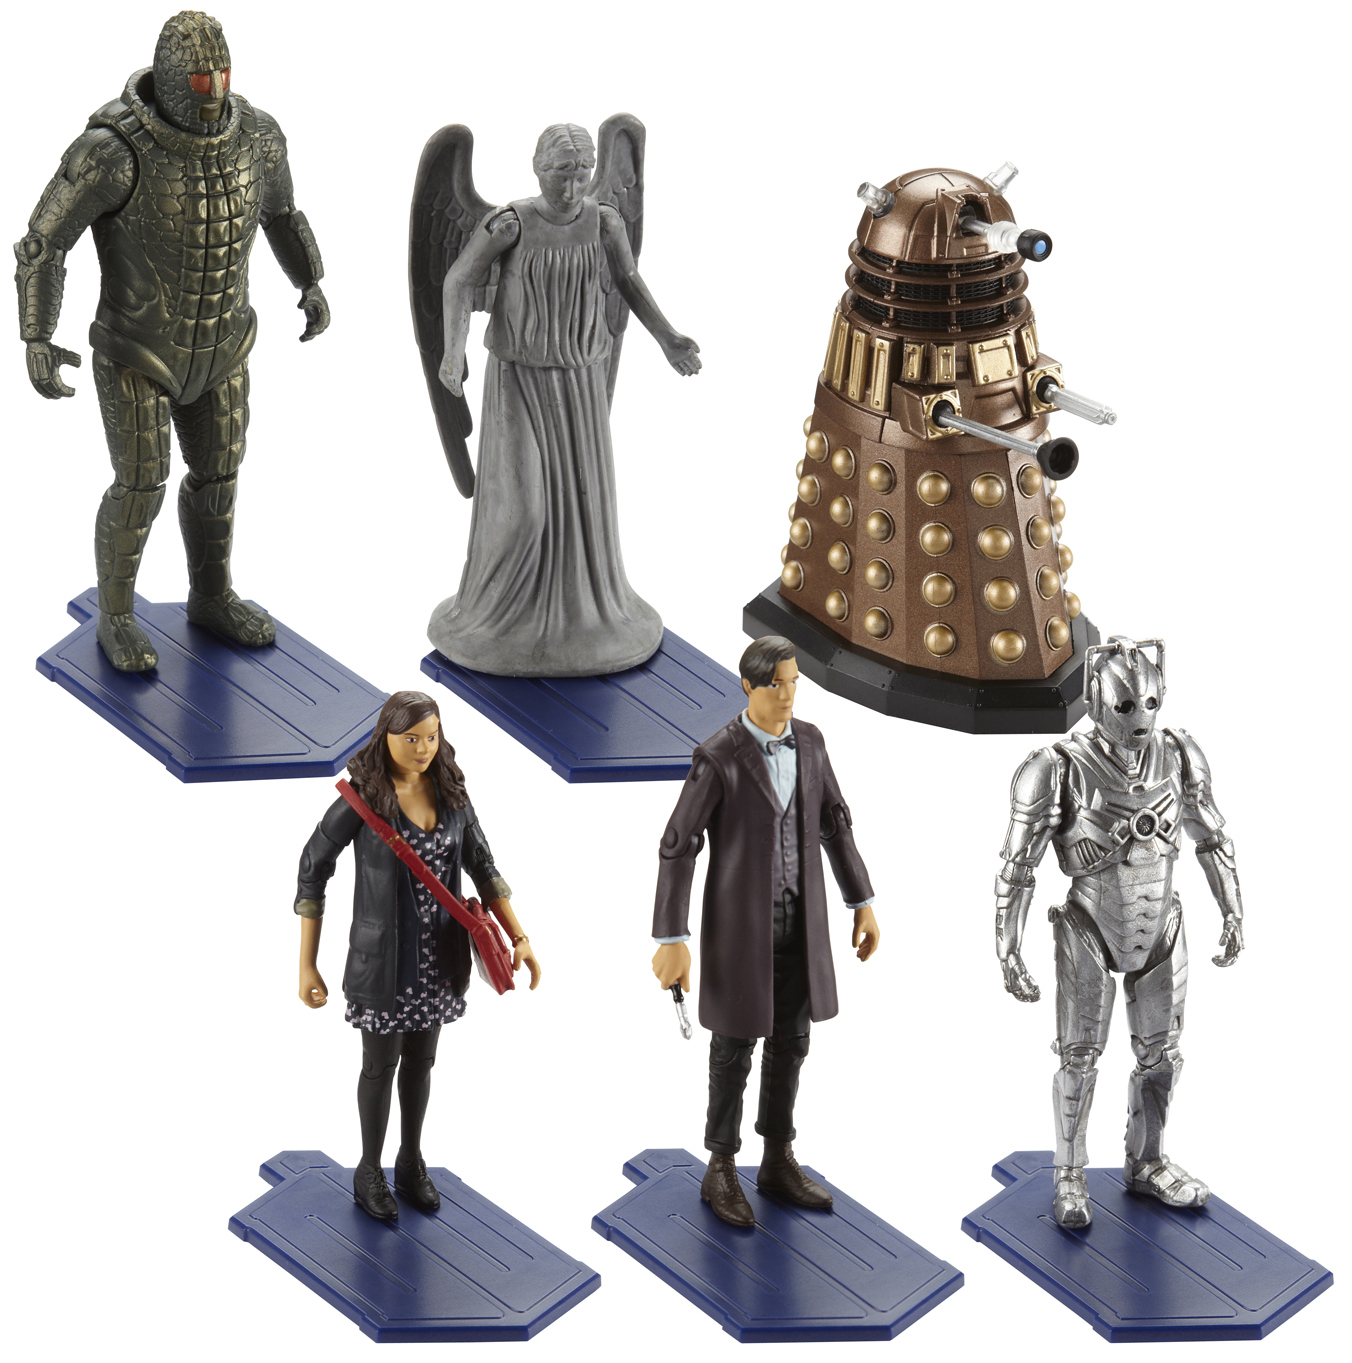 Series 7 Doctor Who Action Figures